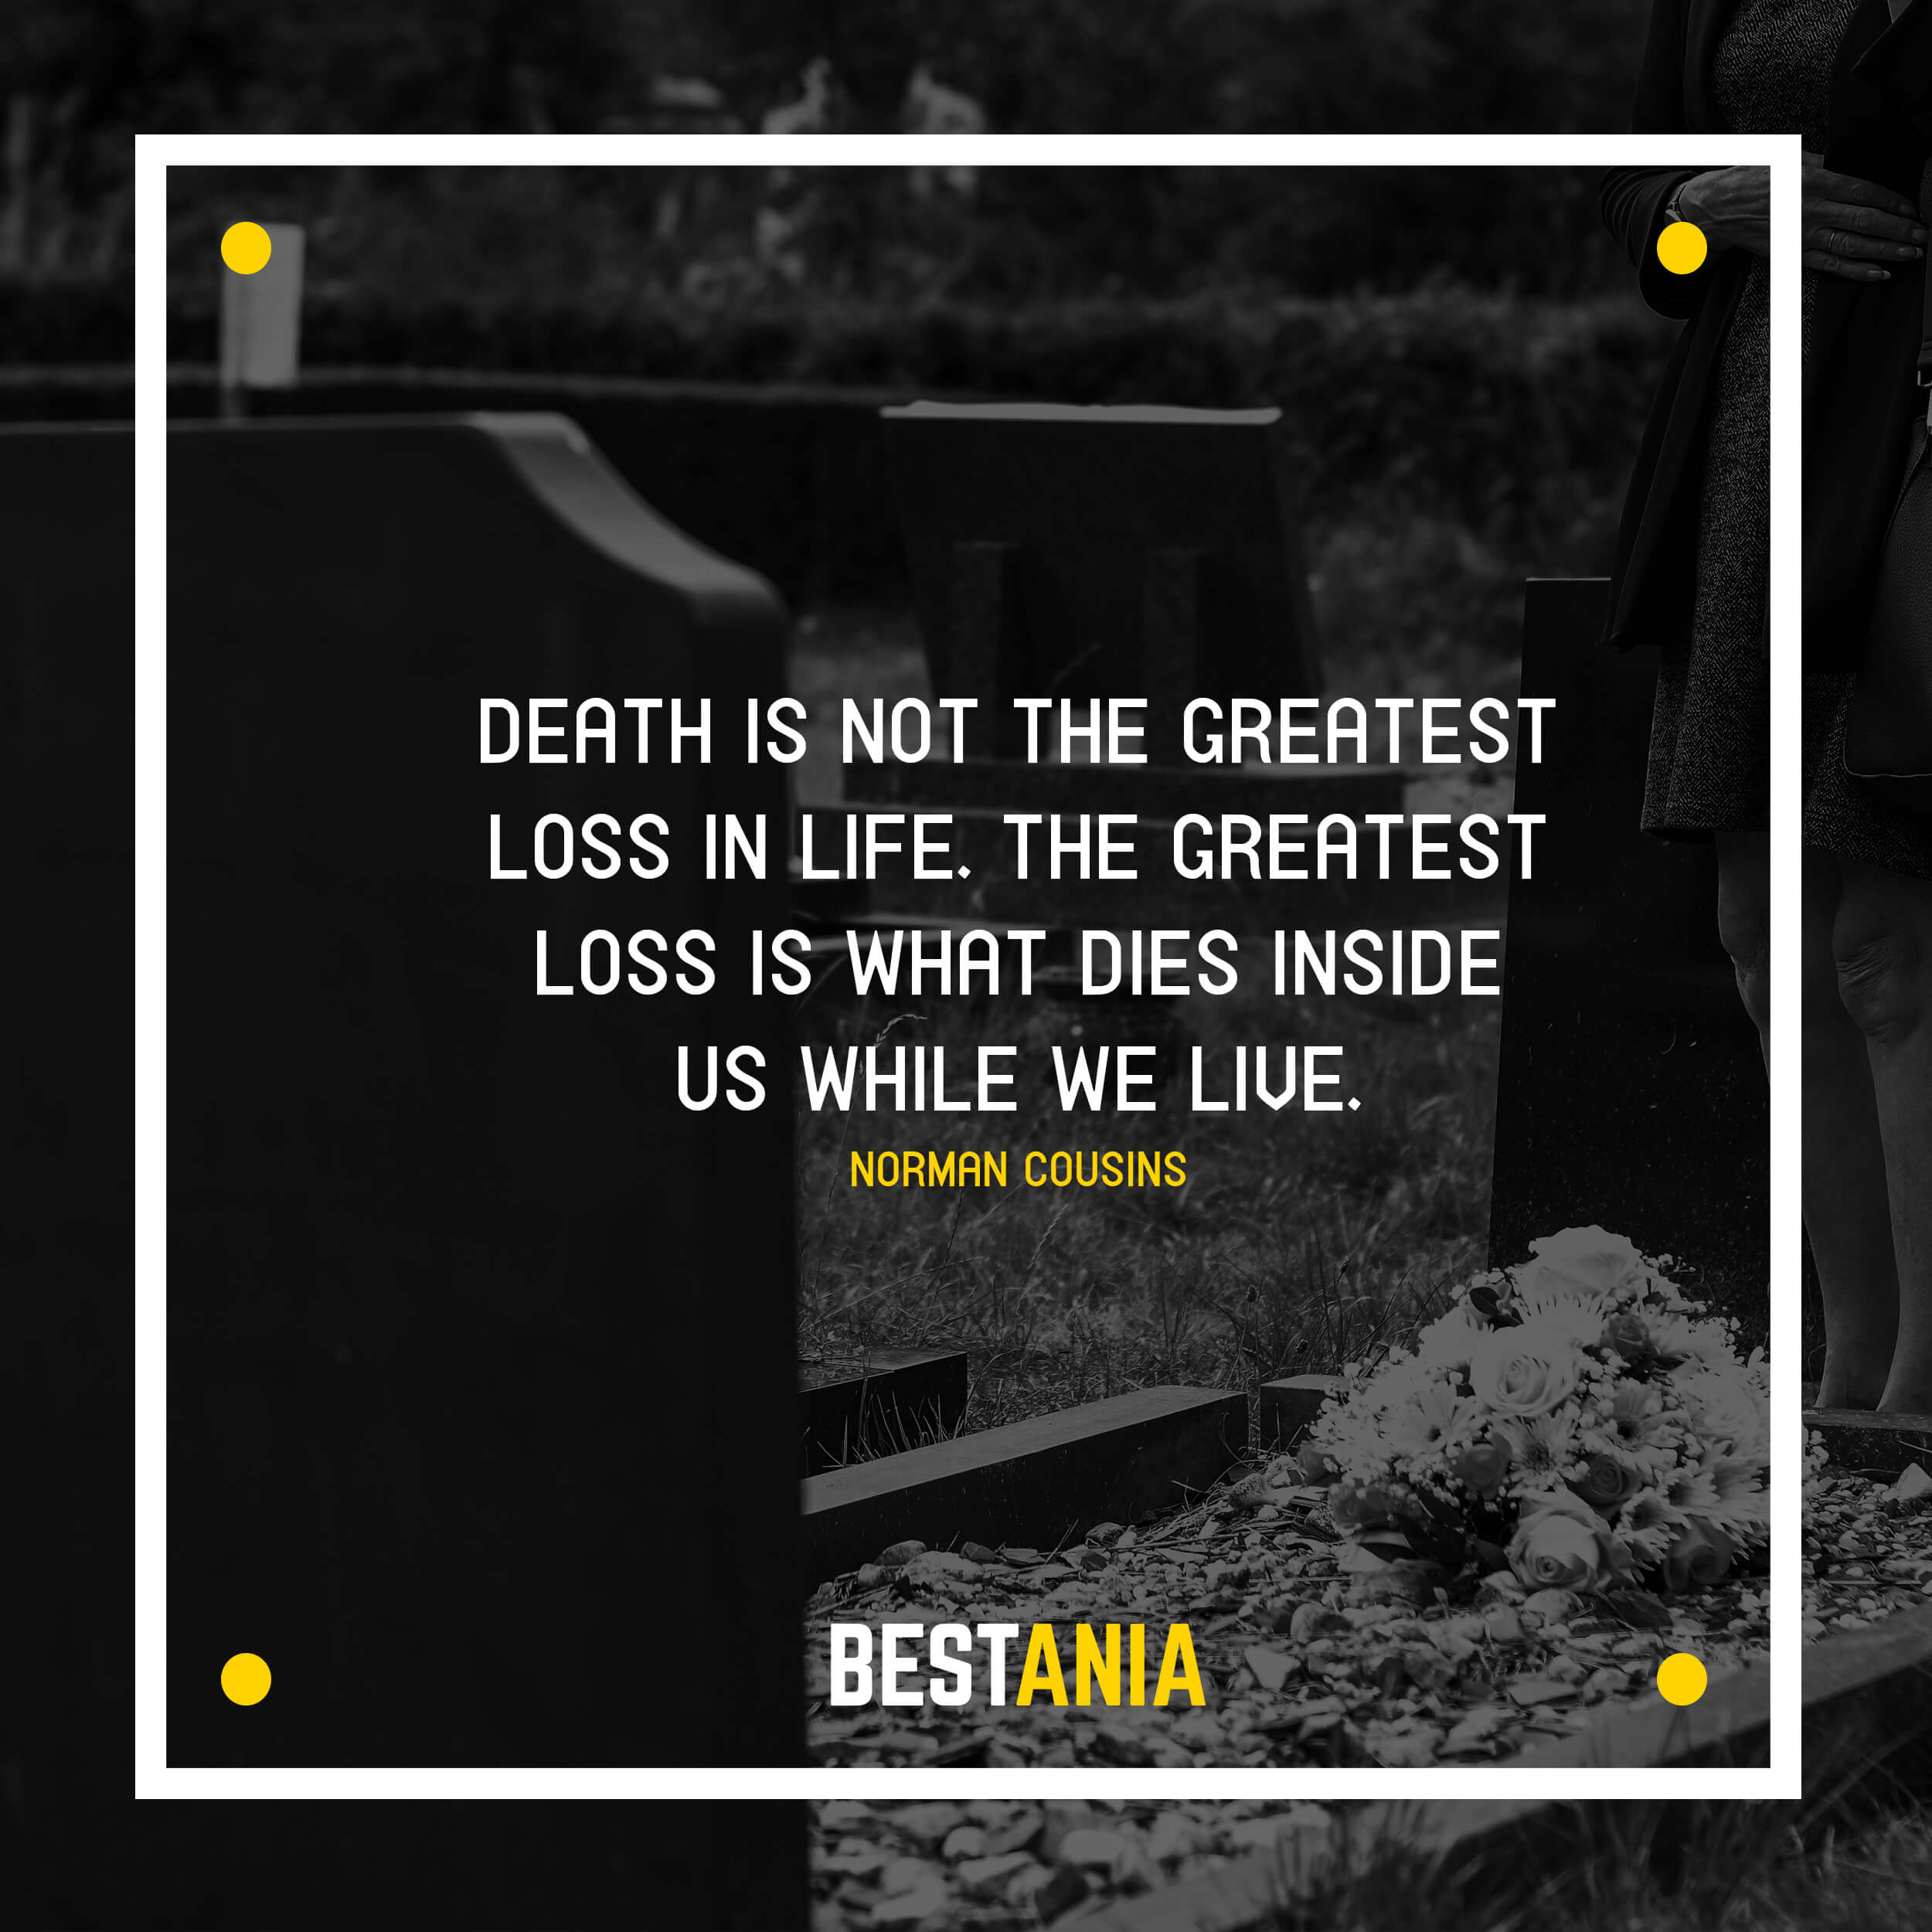 """""""DEATH IS NOT THE GREATEST LOSS IN LIFE. THE GREATEST LOSS IS WHAT DIES INSIDE US WHILE WE LIVE.""""  NORMAN COUSINS"""